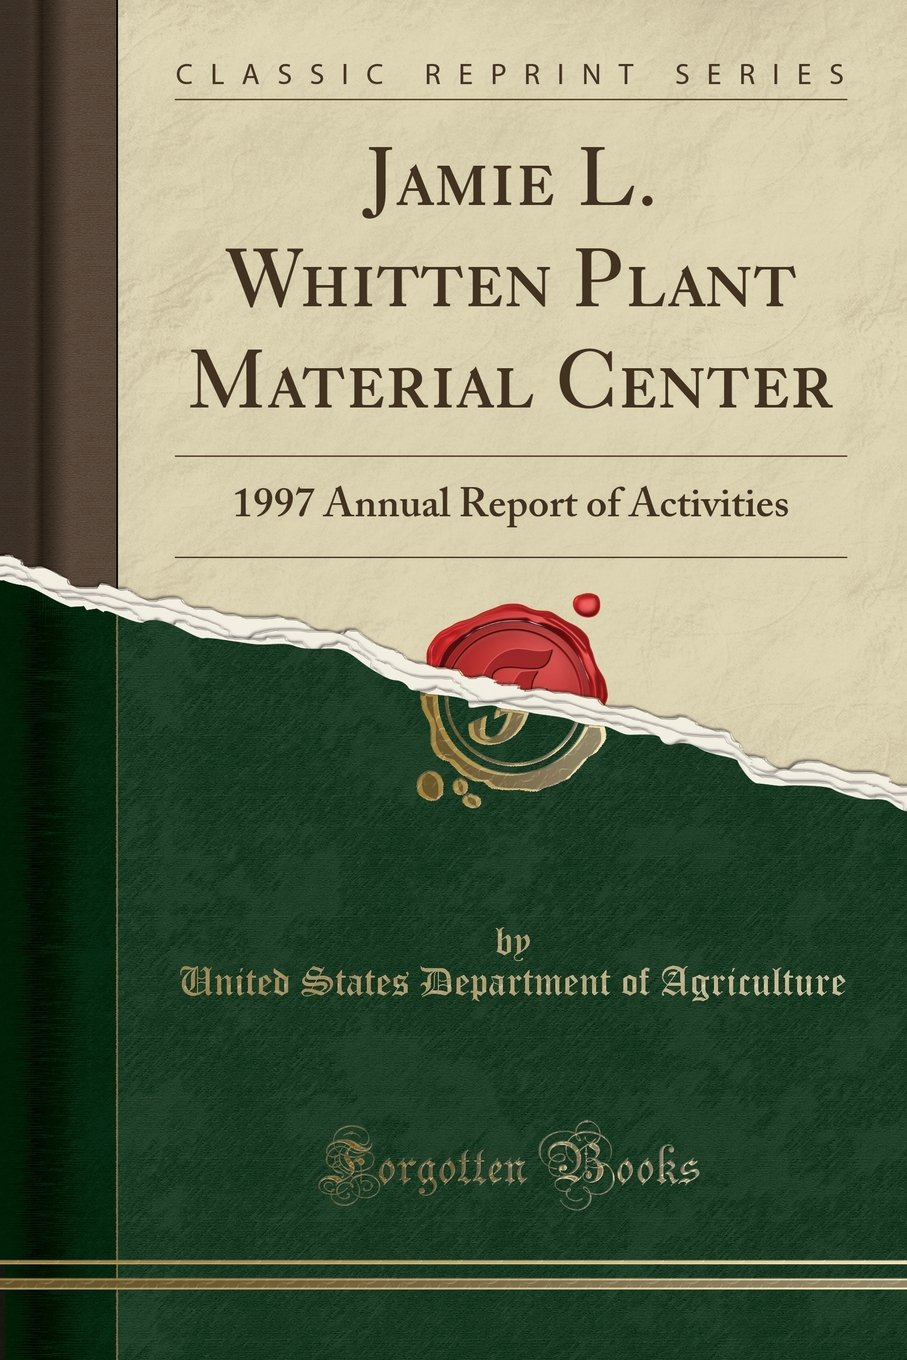 Download Jamie L. Whitten Plant Material Center: 1997 Annual Report of Activities (Classic Reprint) ebook